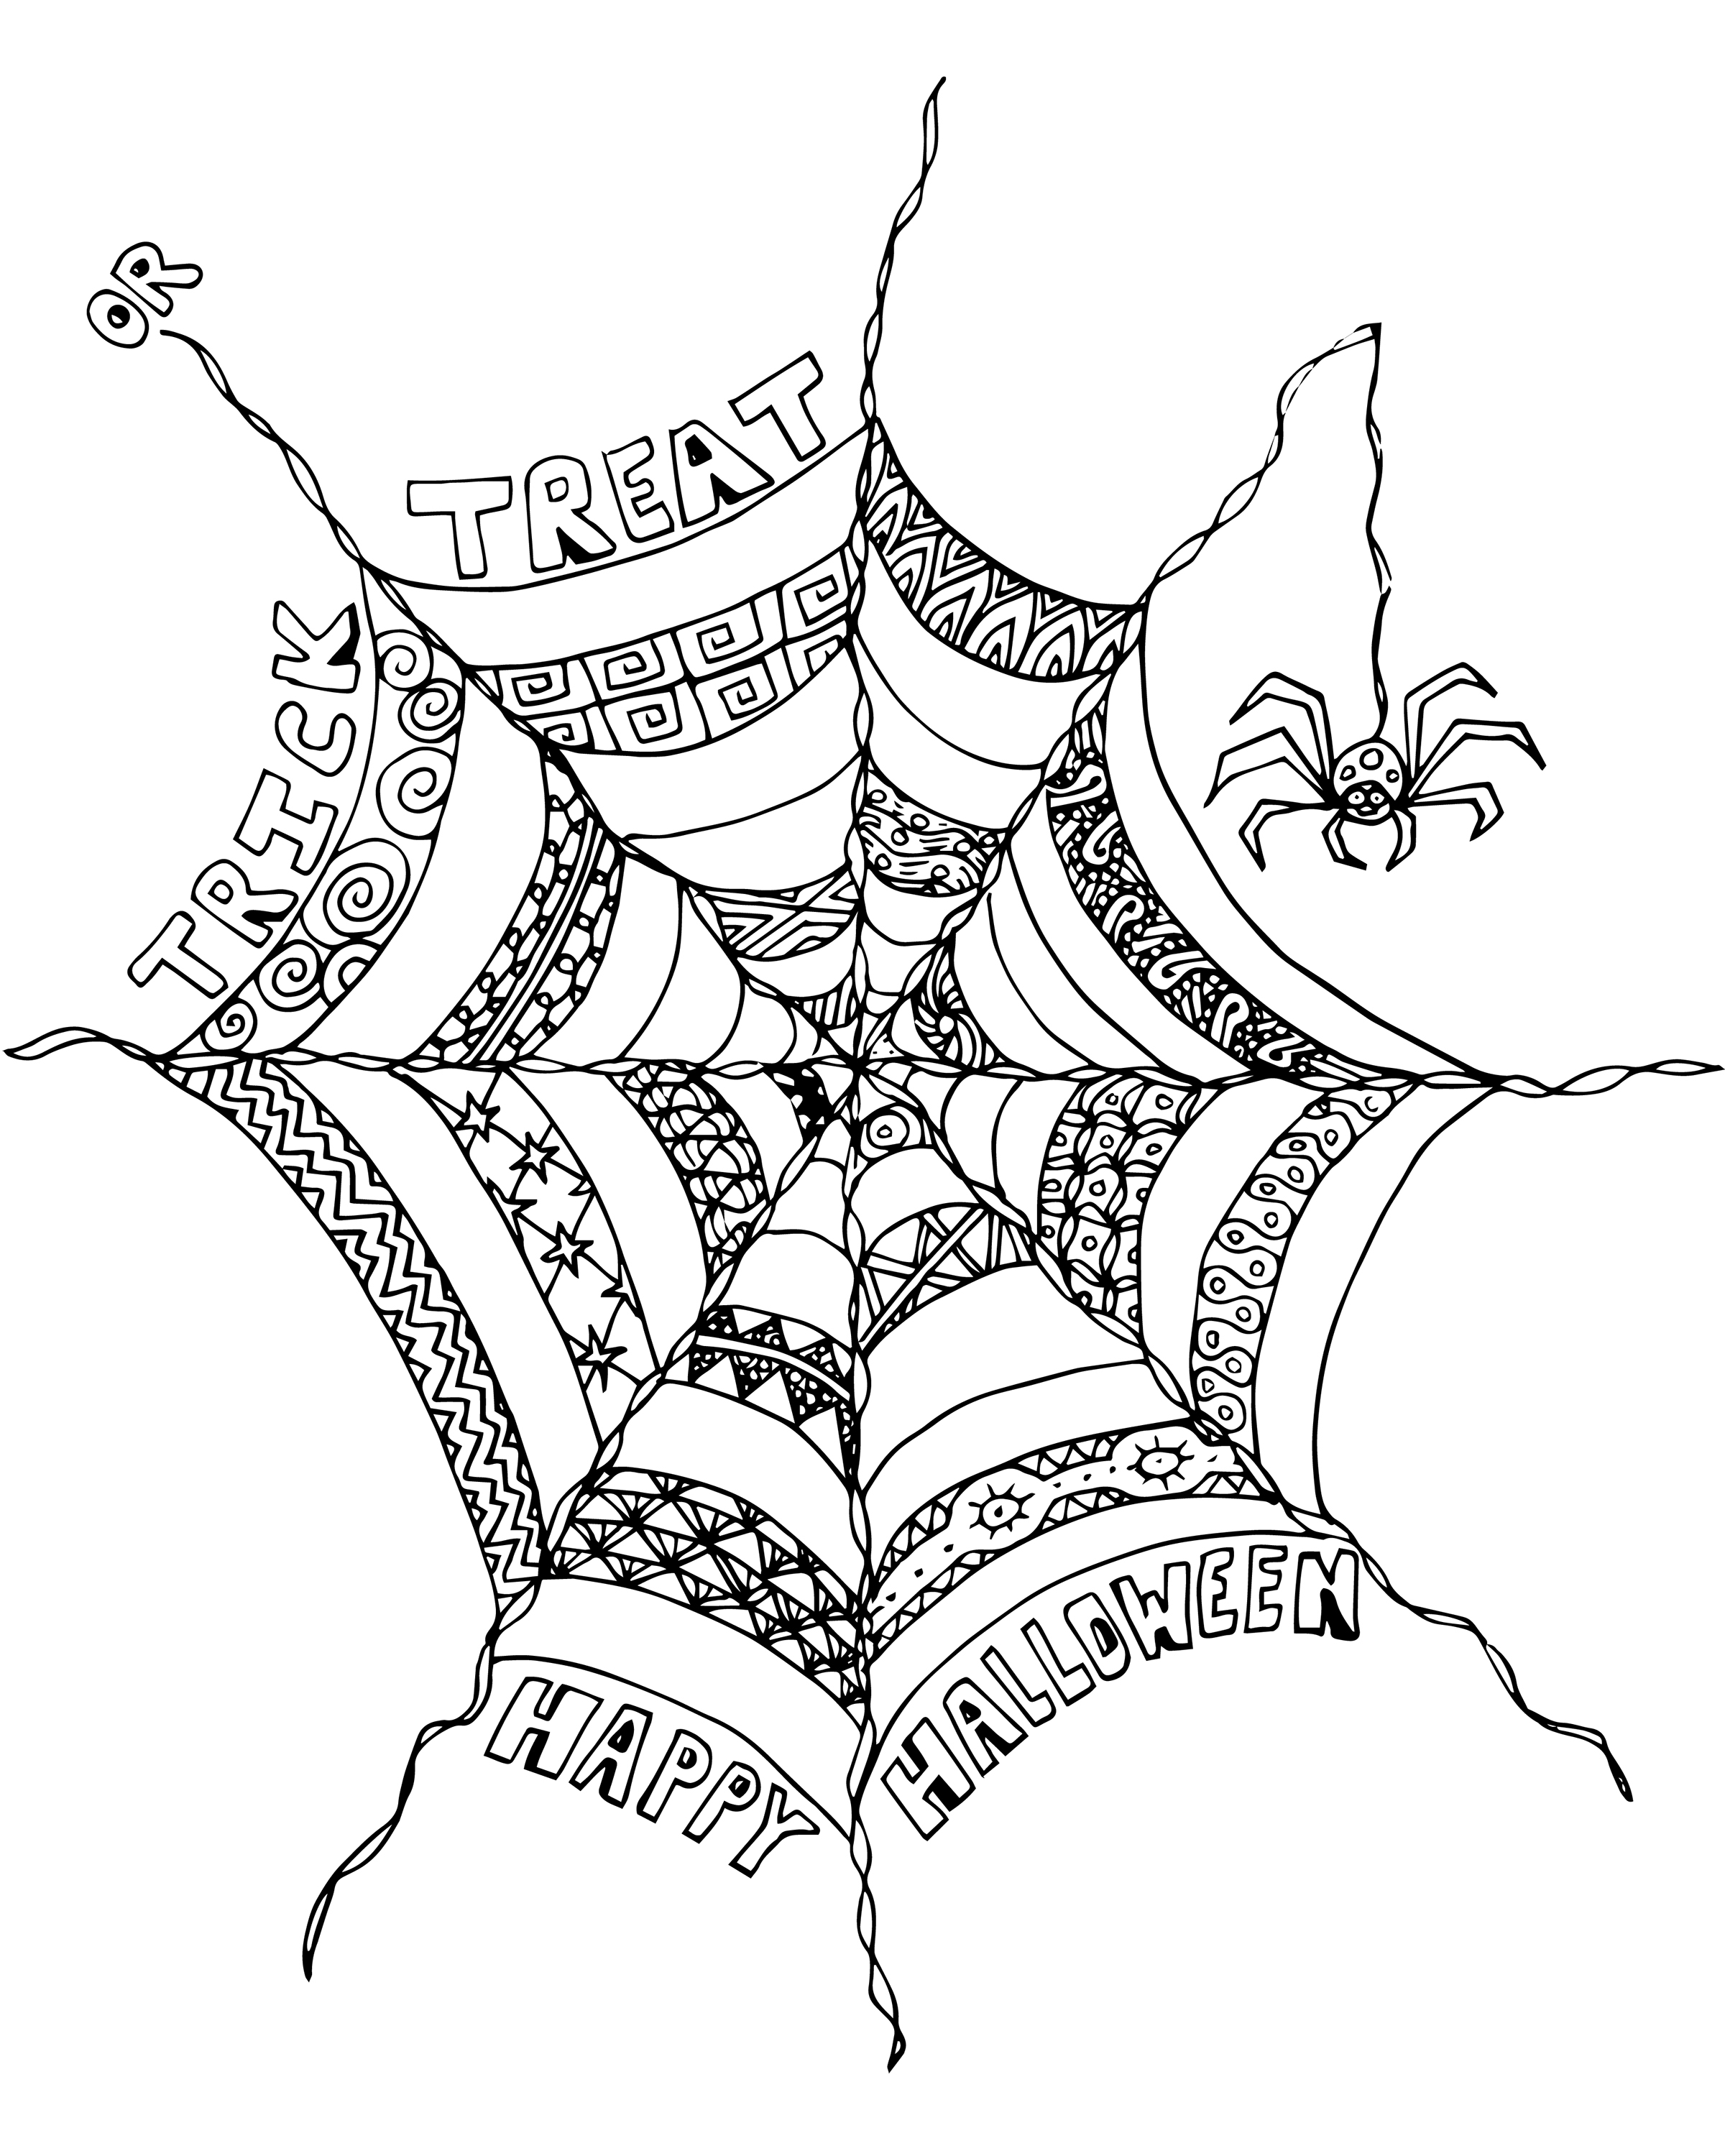 Free Scary Halloween Coloring Pages Free Halloween Coloring Pages For Adults At Getdrawings Free